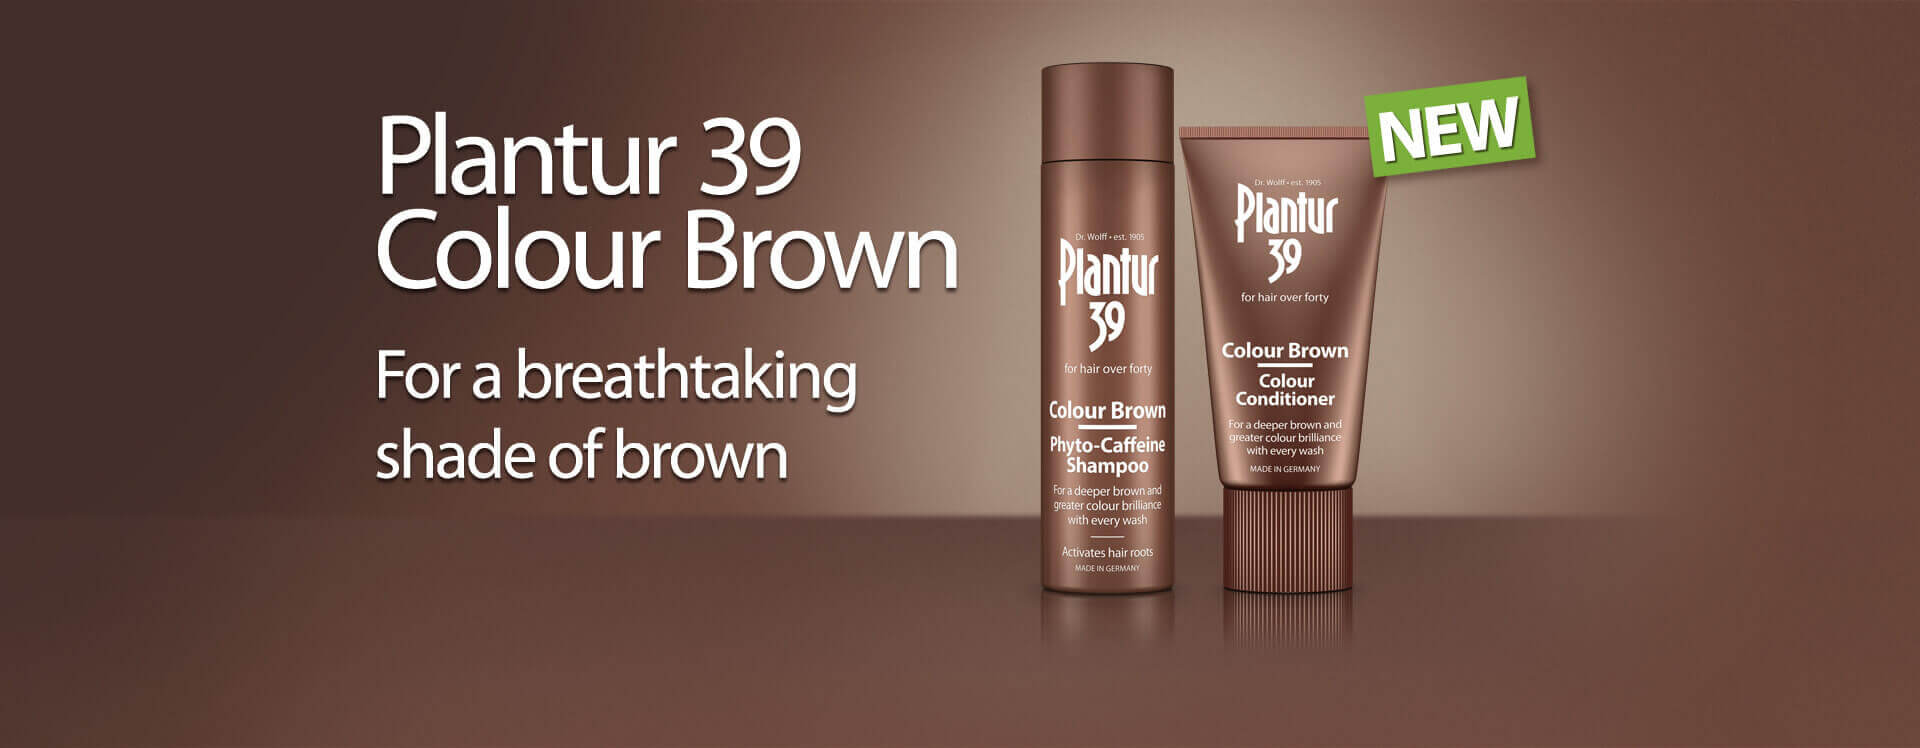 Plantur 39 Colour Brown for a breathtaking shade of brown